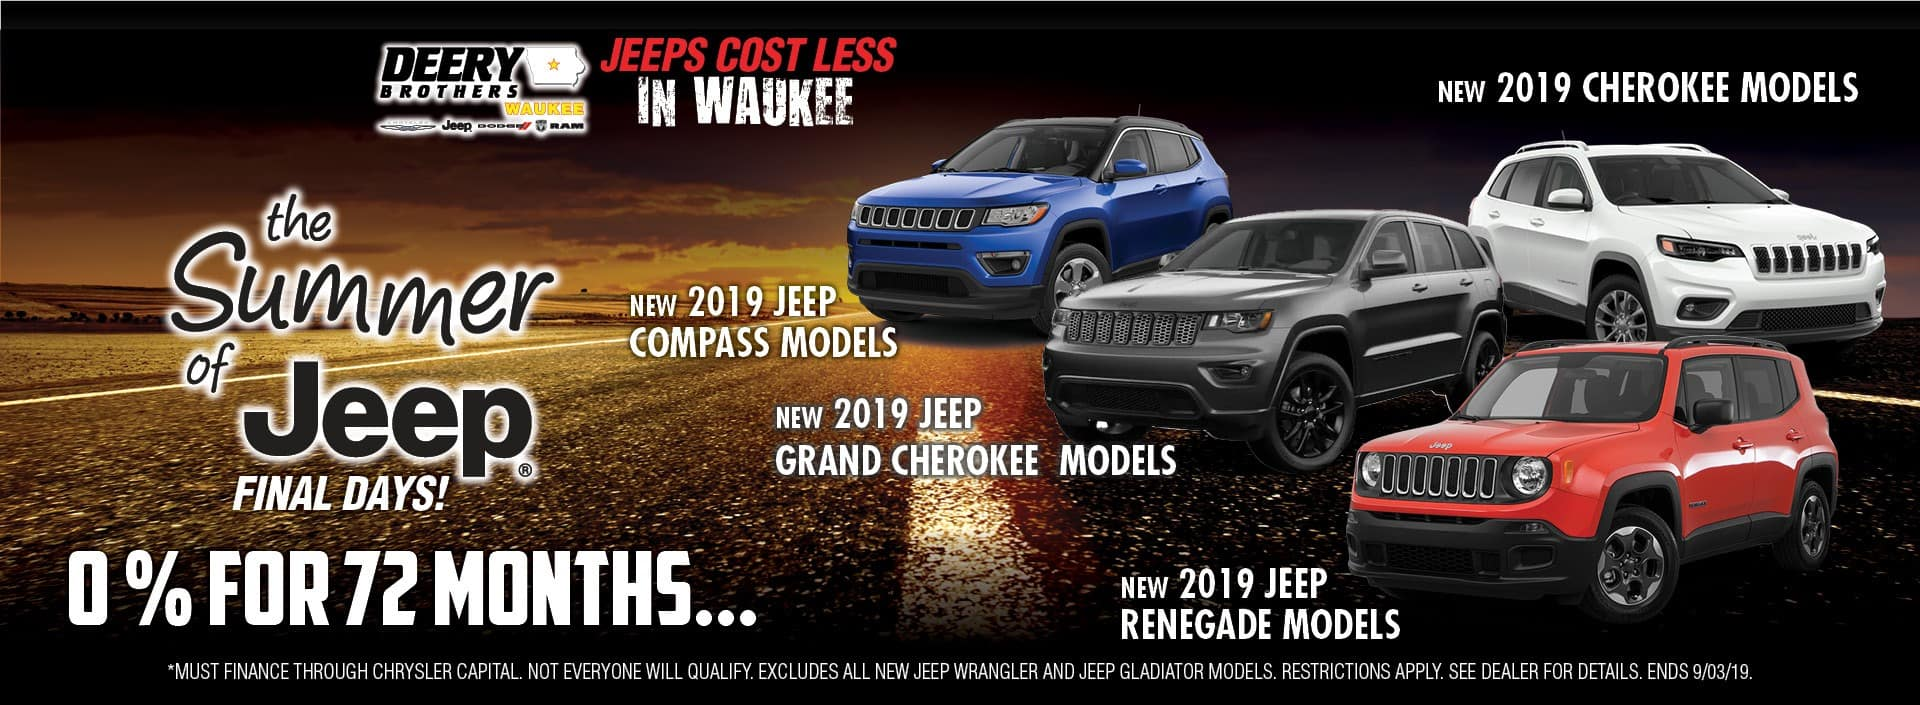 Deery Brothers Chrysler Dodge Jeep Ram | New and Used Car Dealer in